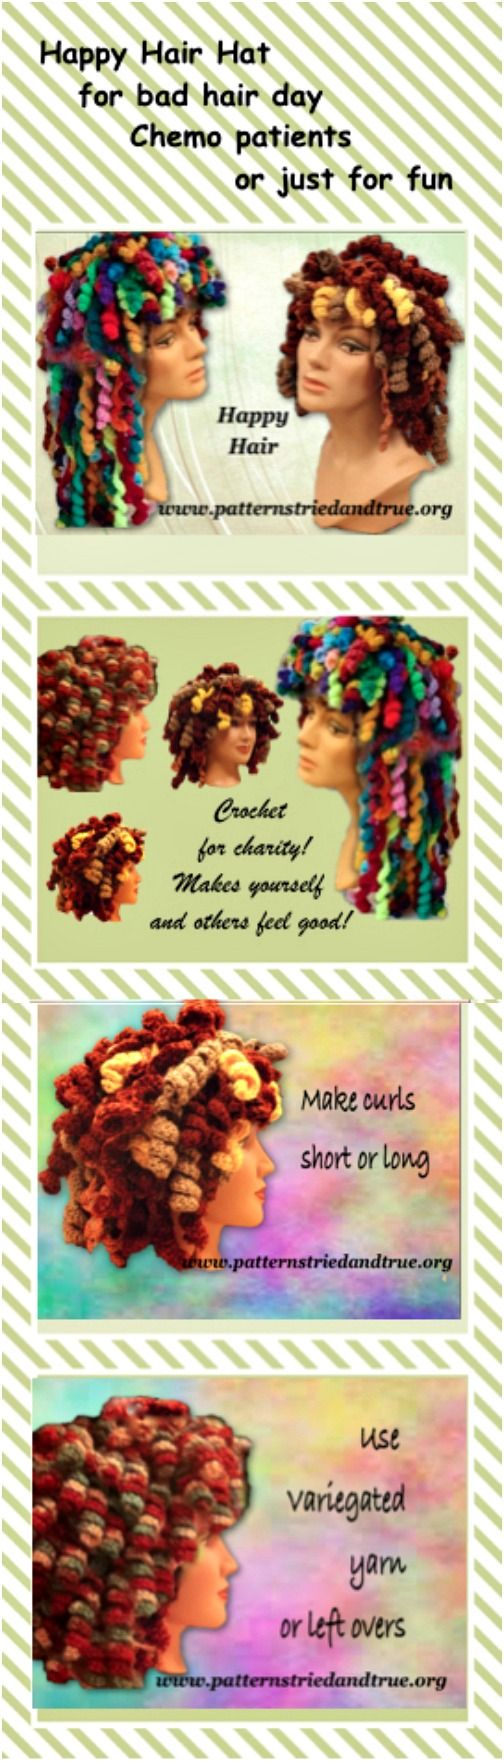 Crochet Wig Happy Hair Hat Pattern, Cancer Patient Hat, Disguise a bad hair day… Make happy hair in any color you wish and have so much fun with it: Crochet this hat as welcomed cover-up hat for chemo patients, for your bad hair day, or just a fun hat.